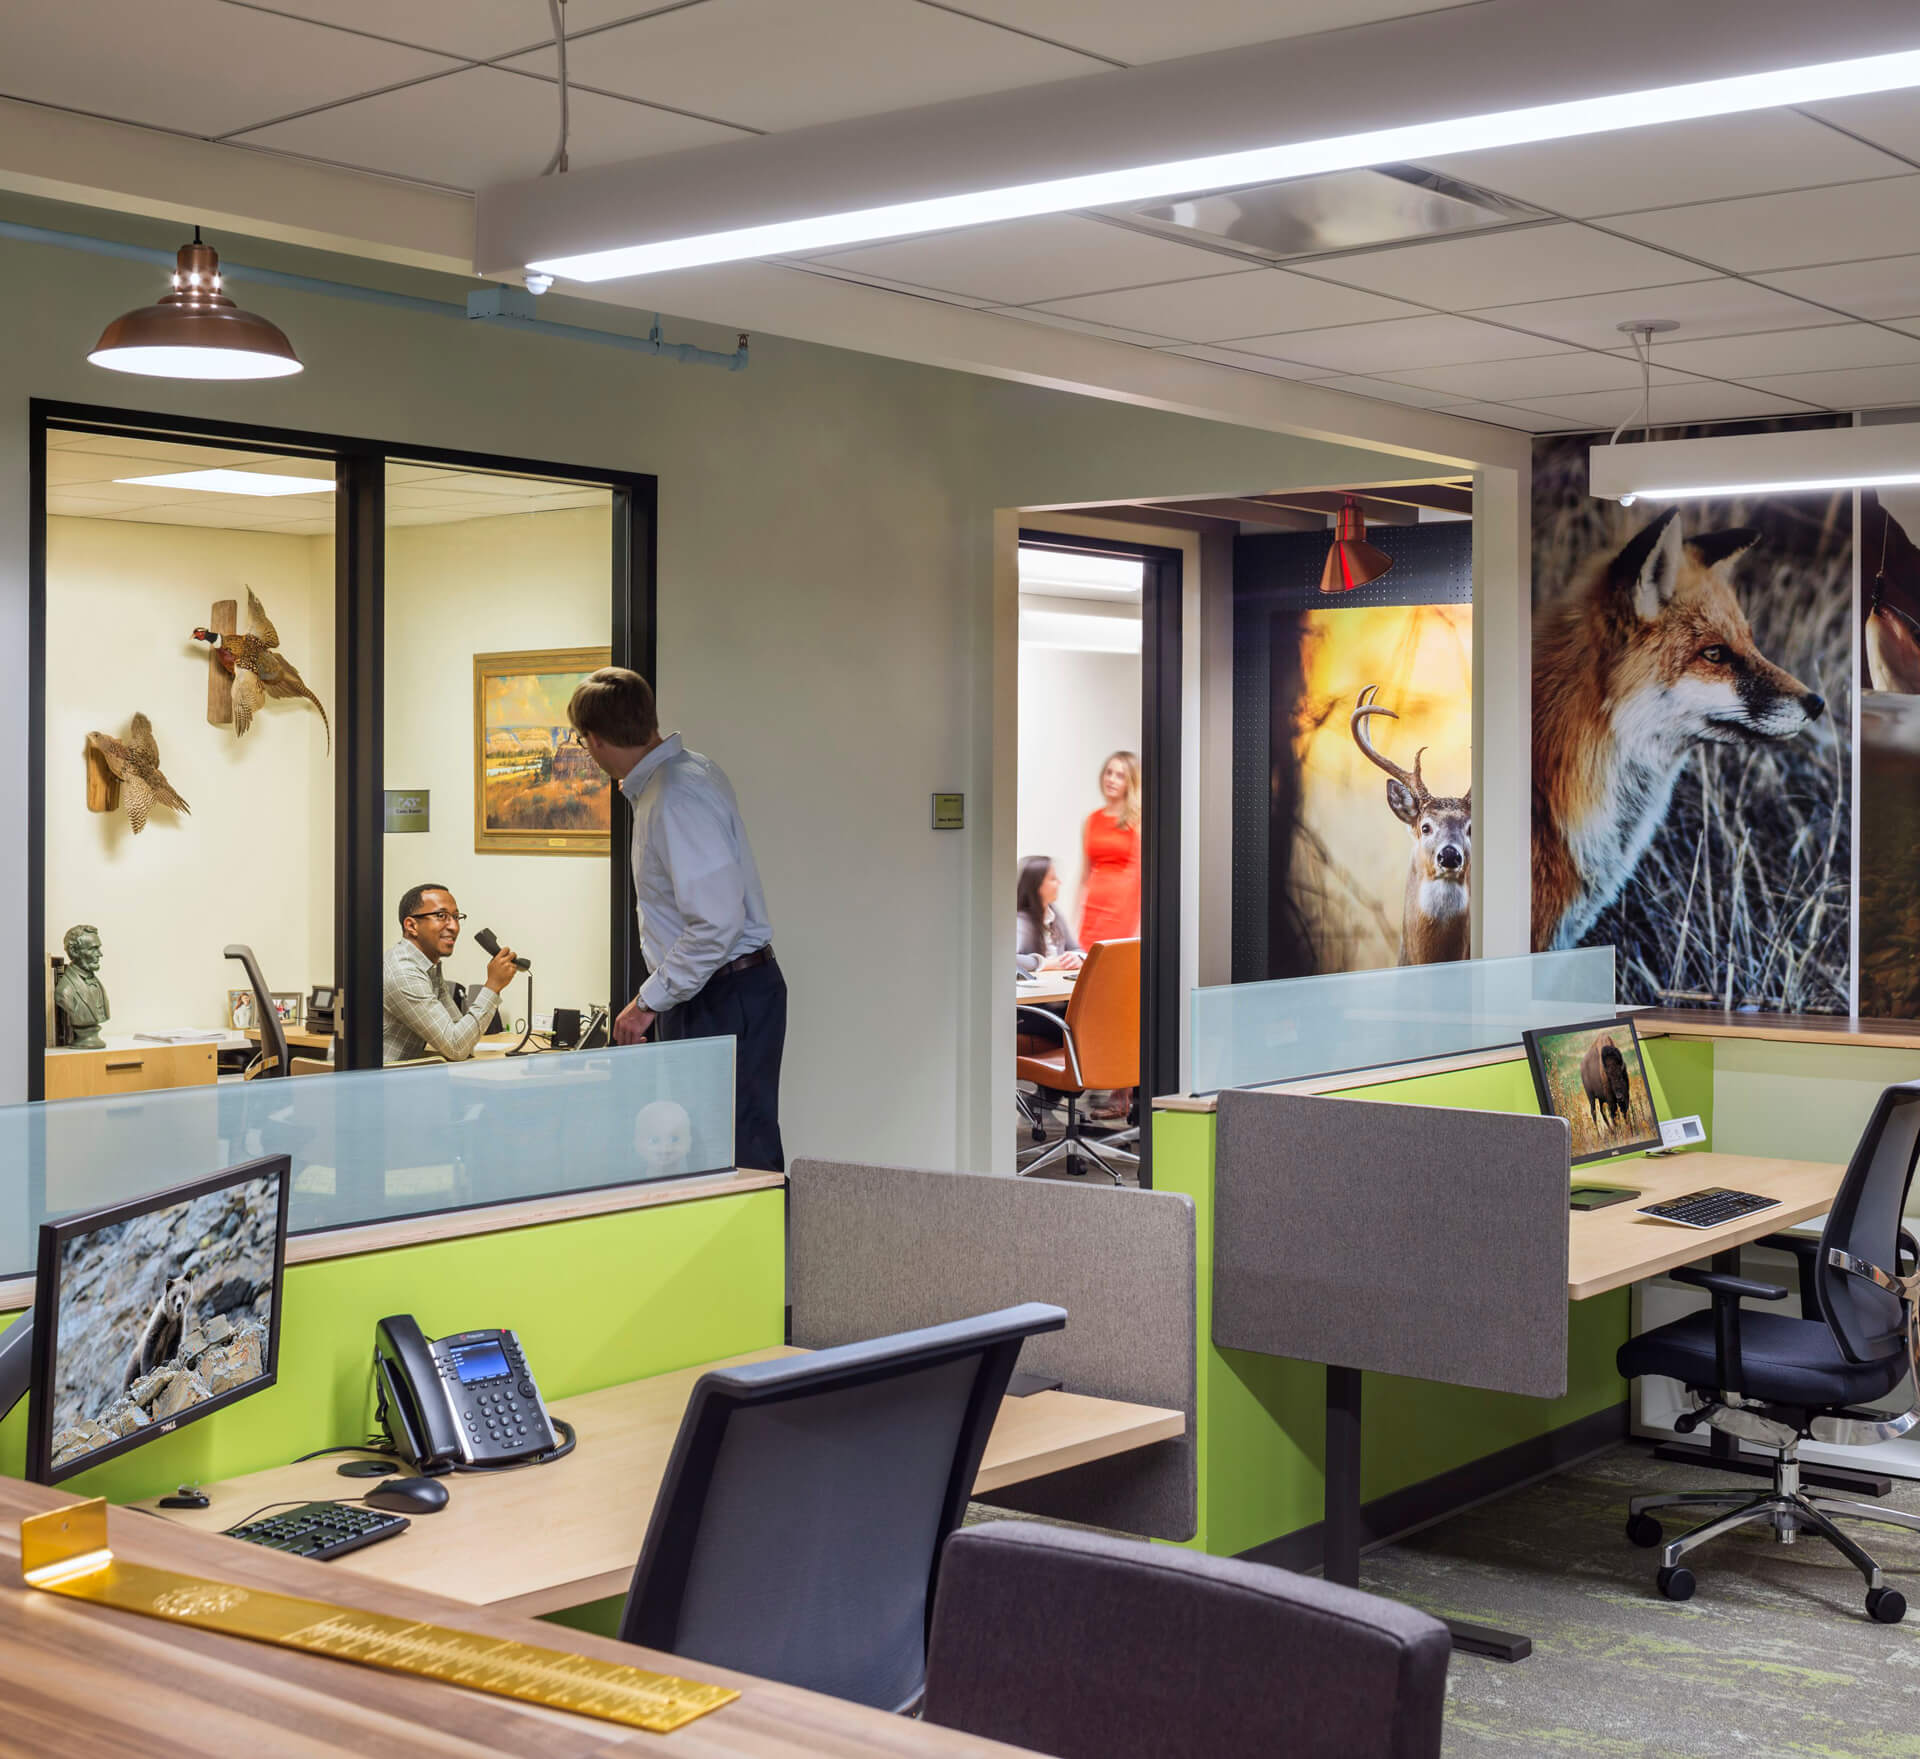 Custom graphics throughout the space create immersive elements that add layers to the story of this office. The project also incorporated adjustable height desks for all offices.